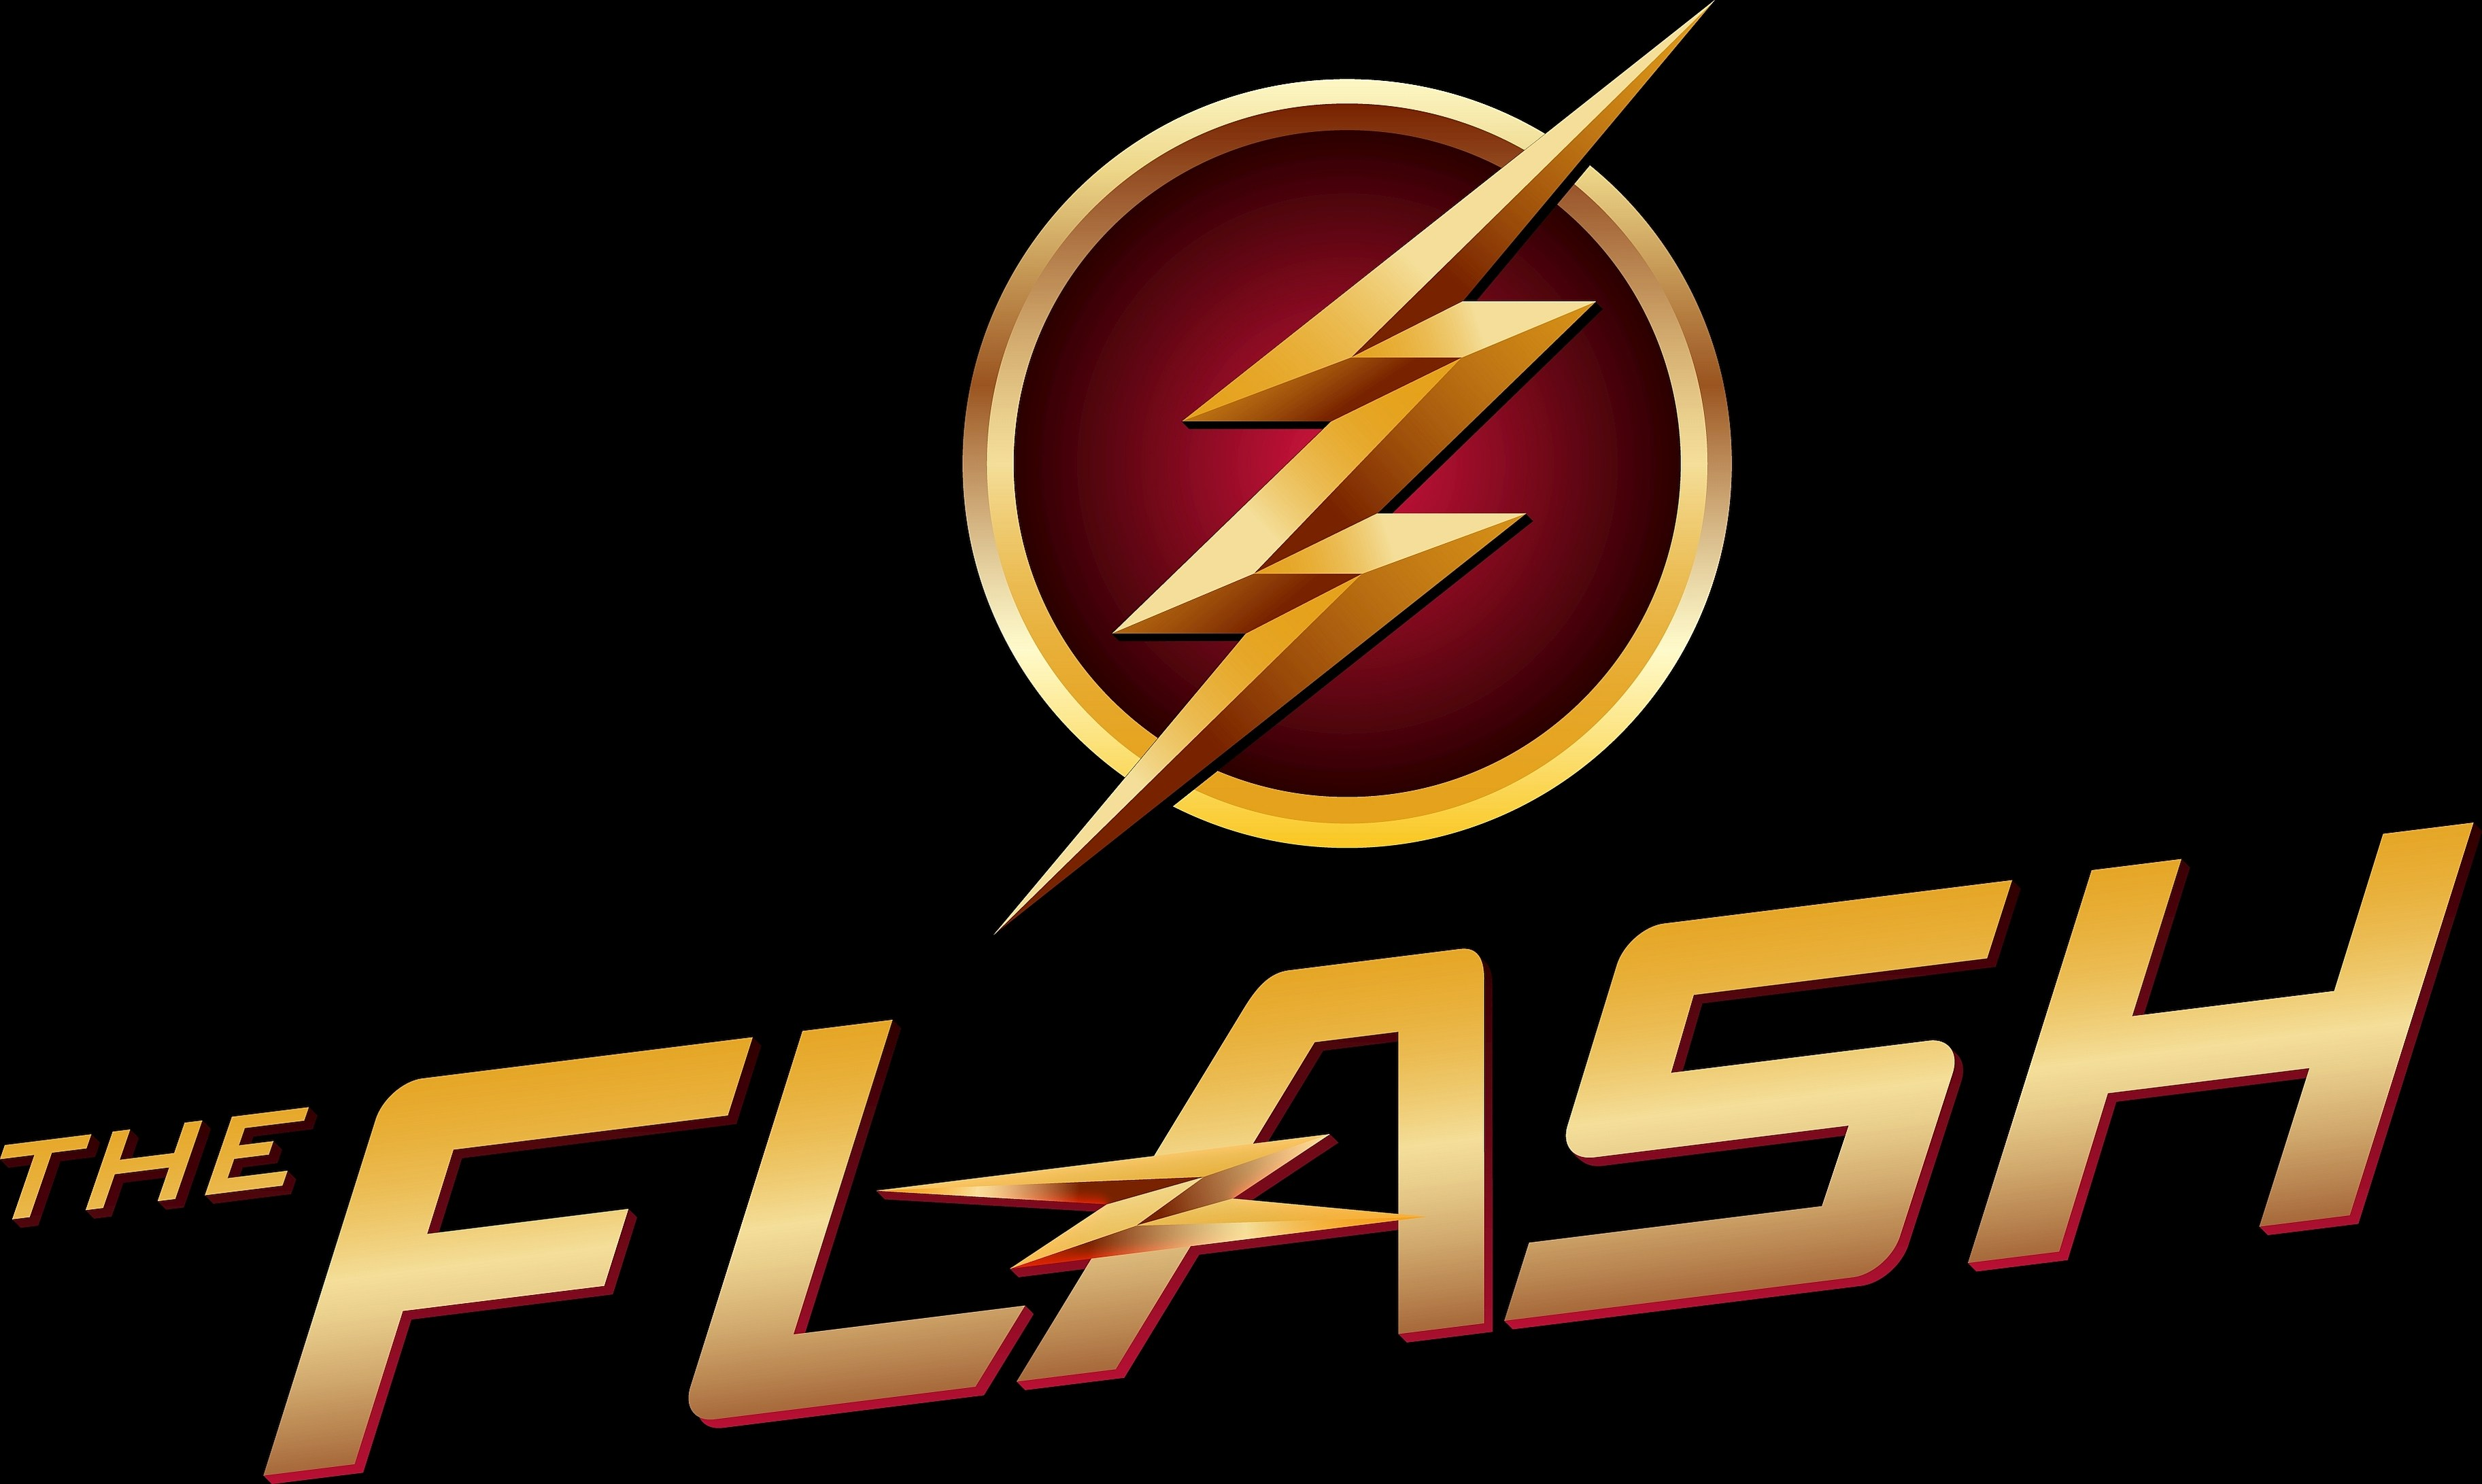 The flash logo hd 4k wallpaper - Tv series wallpaper 4k ...